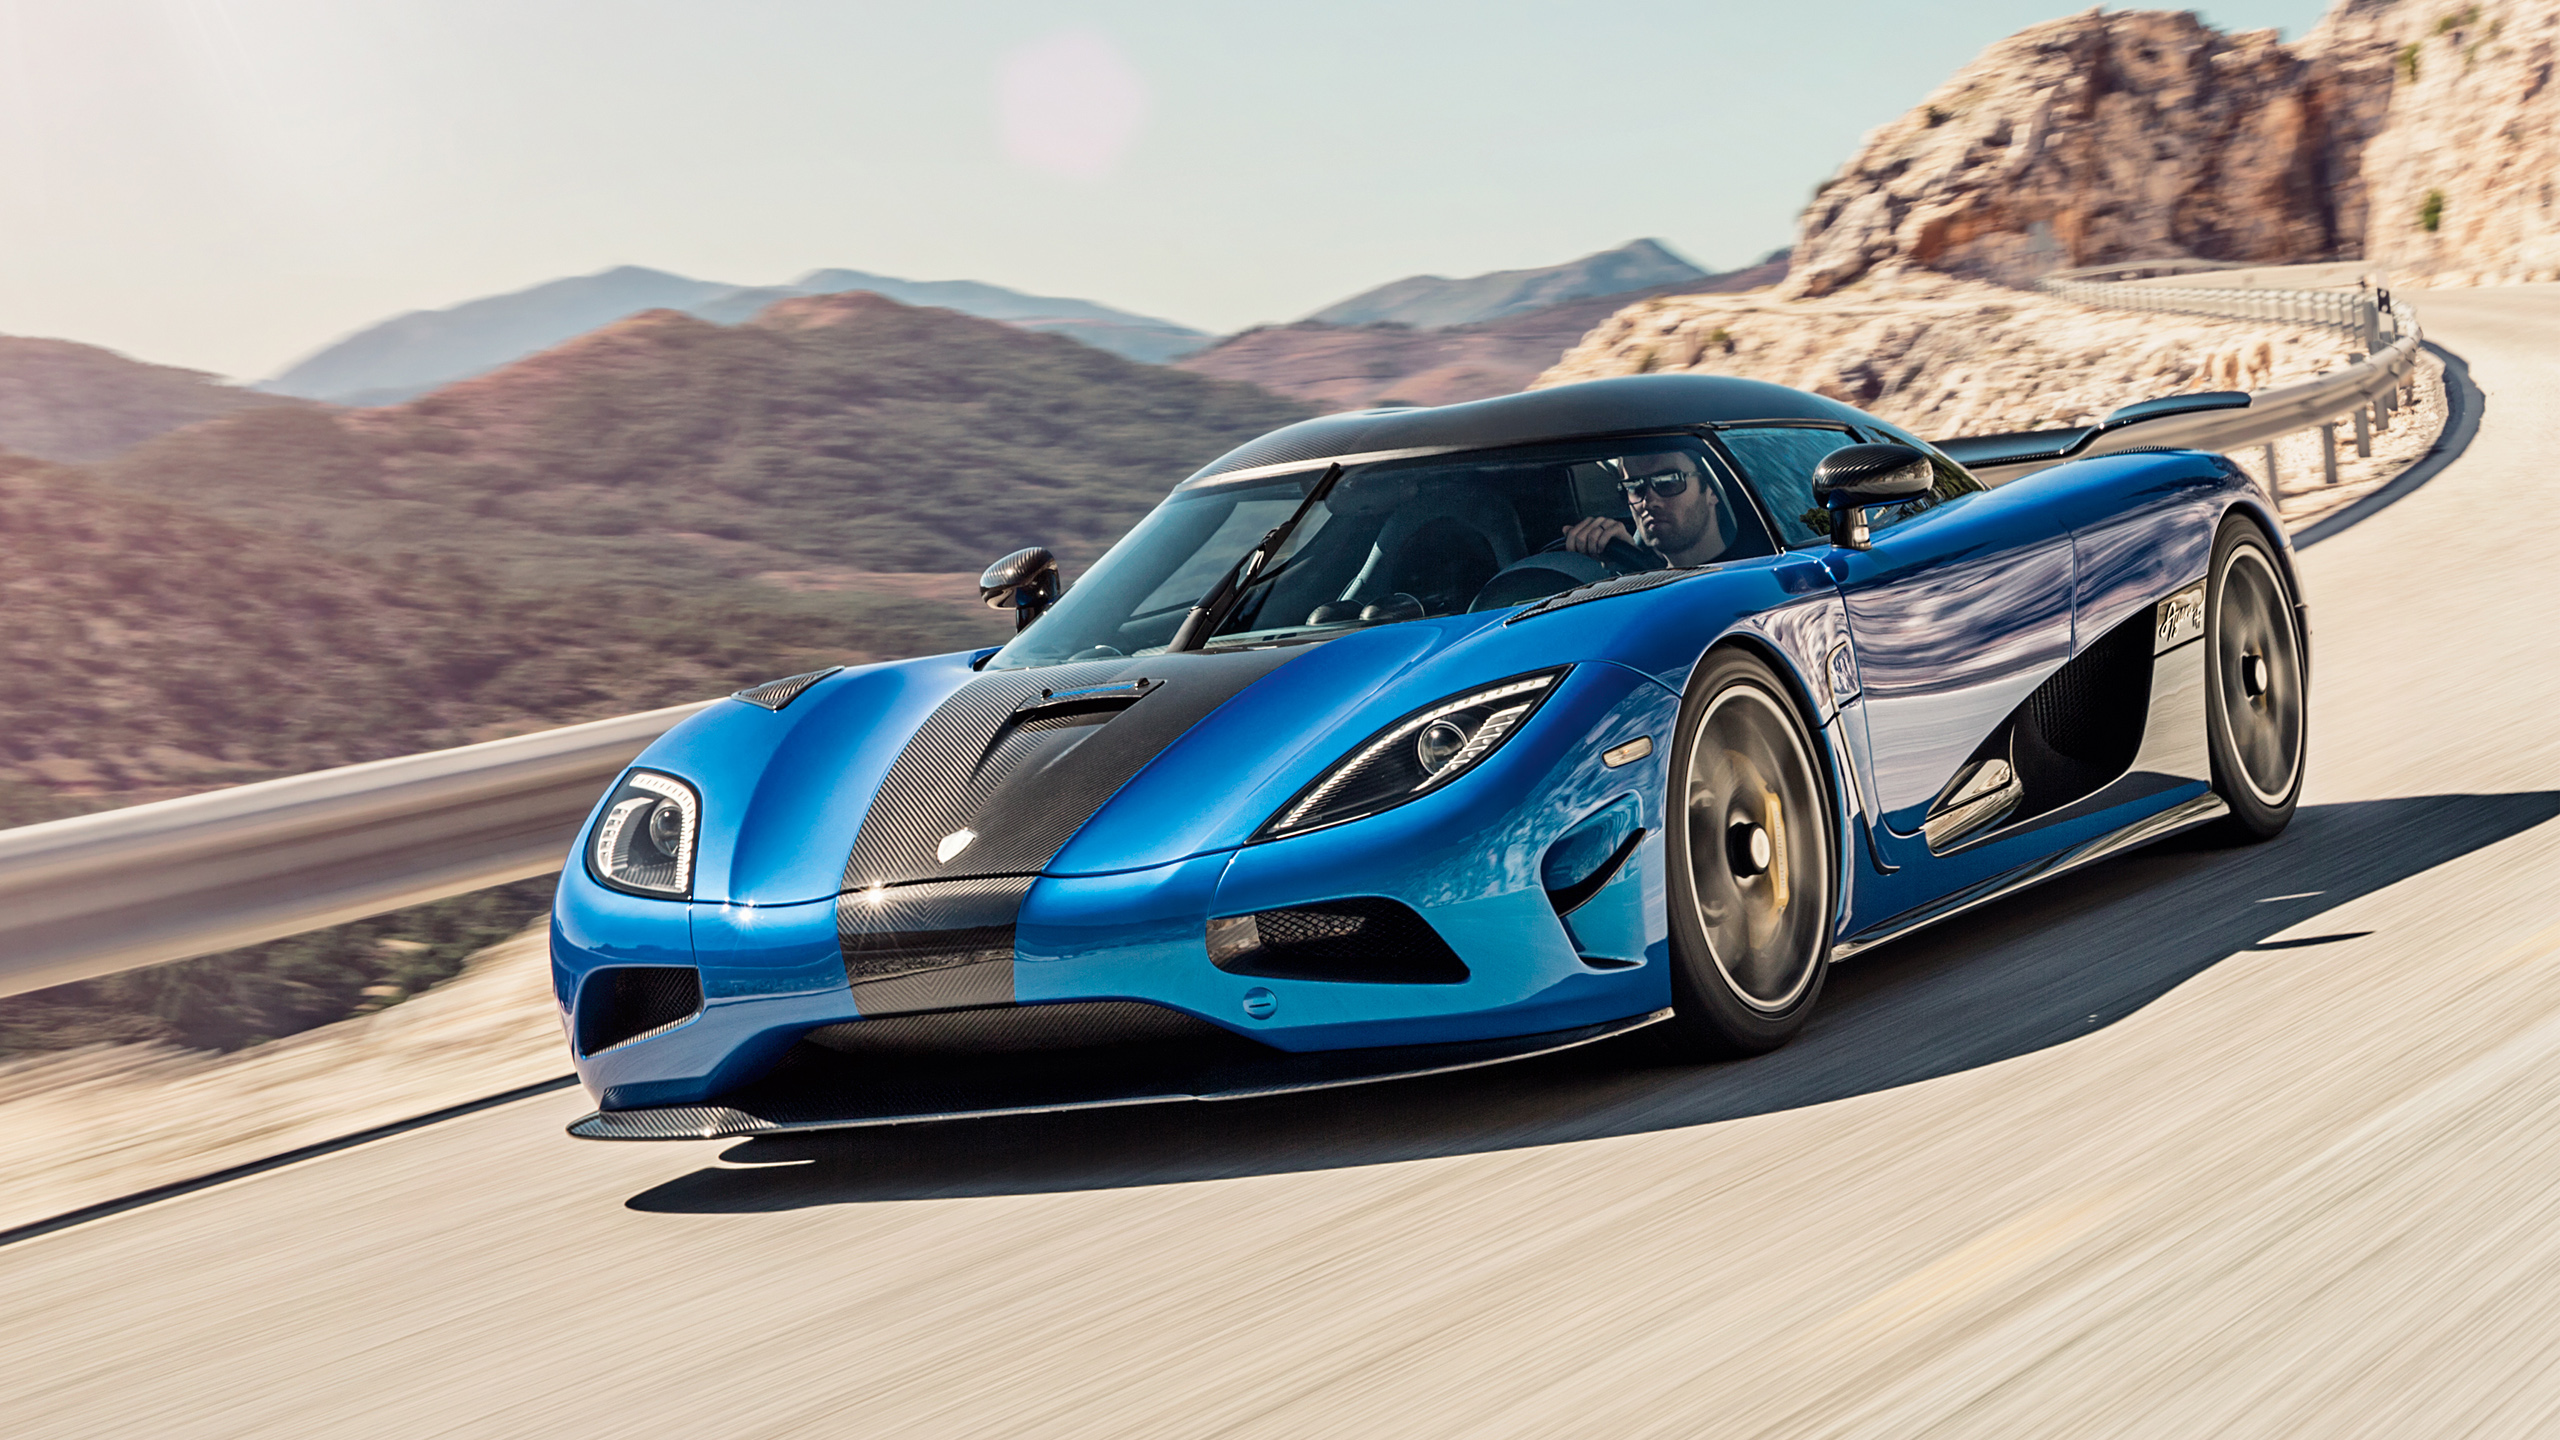 2015 koenigsegg agera hh wallpaper hd car wallpapers